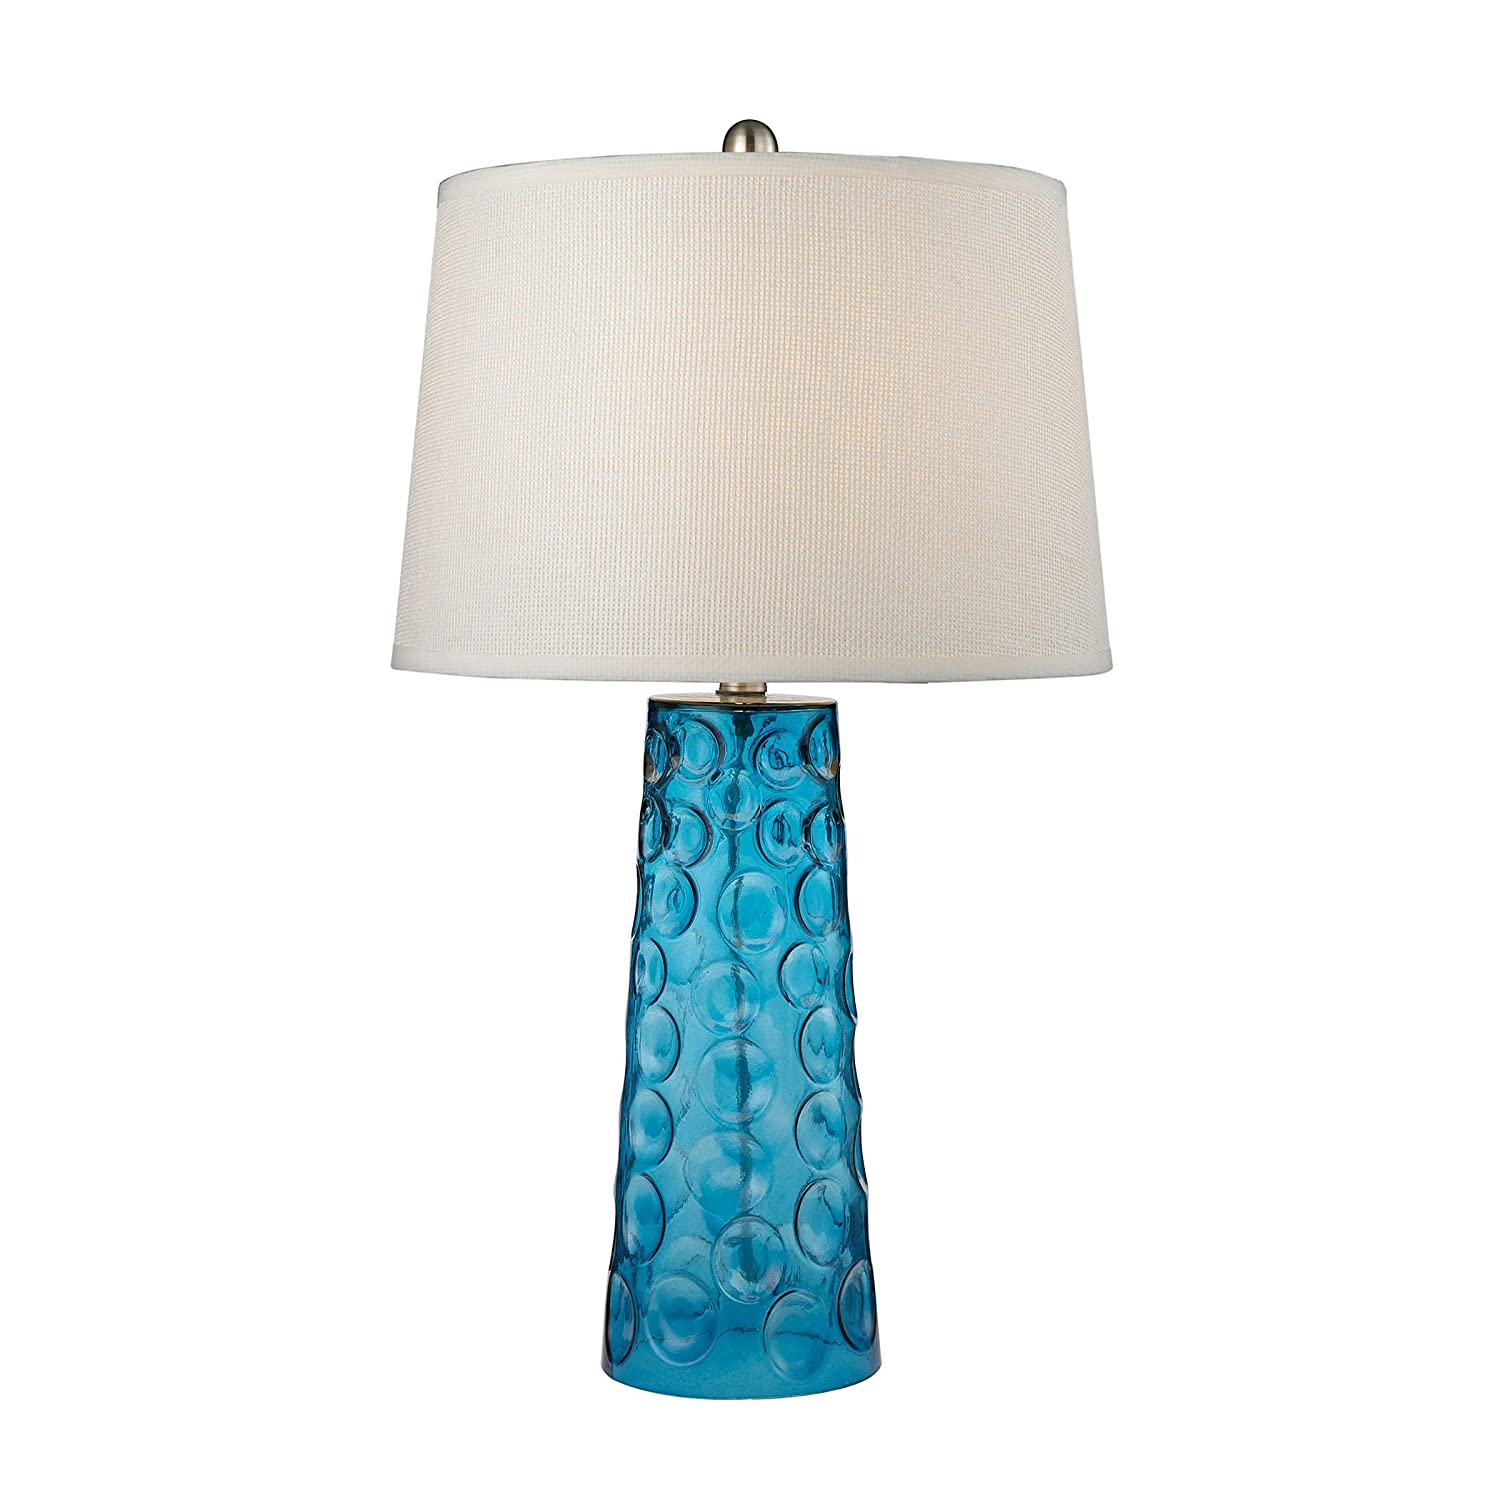 Small glass table lamps - Small Glass Table Lamps 30